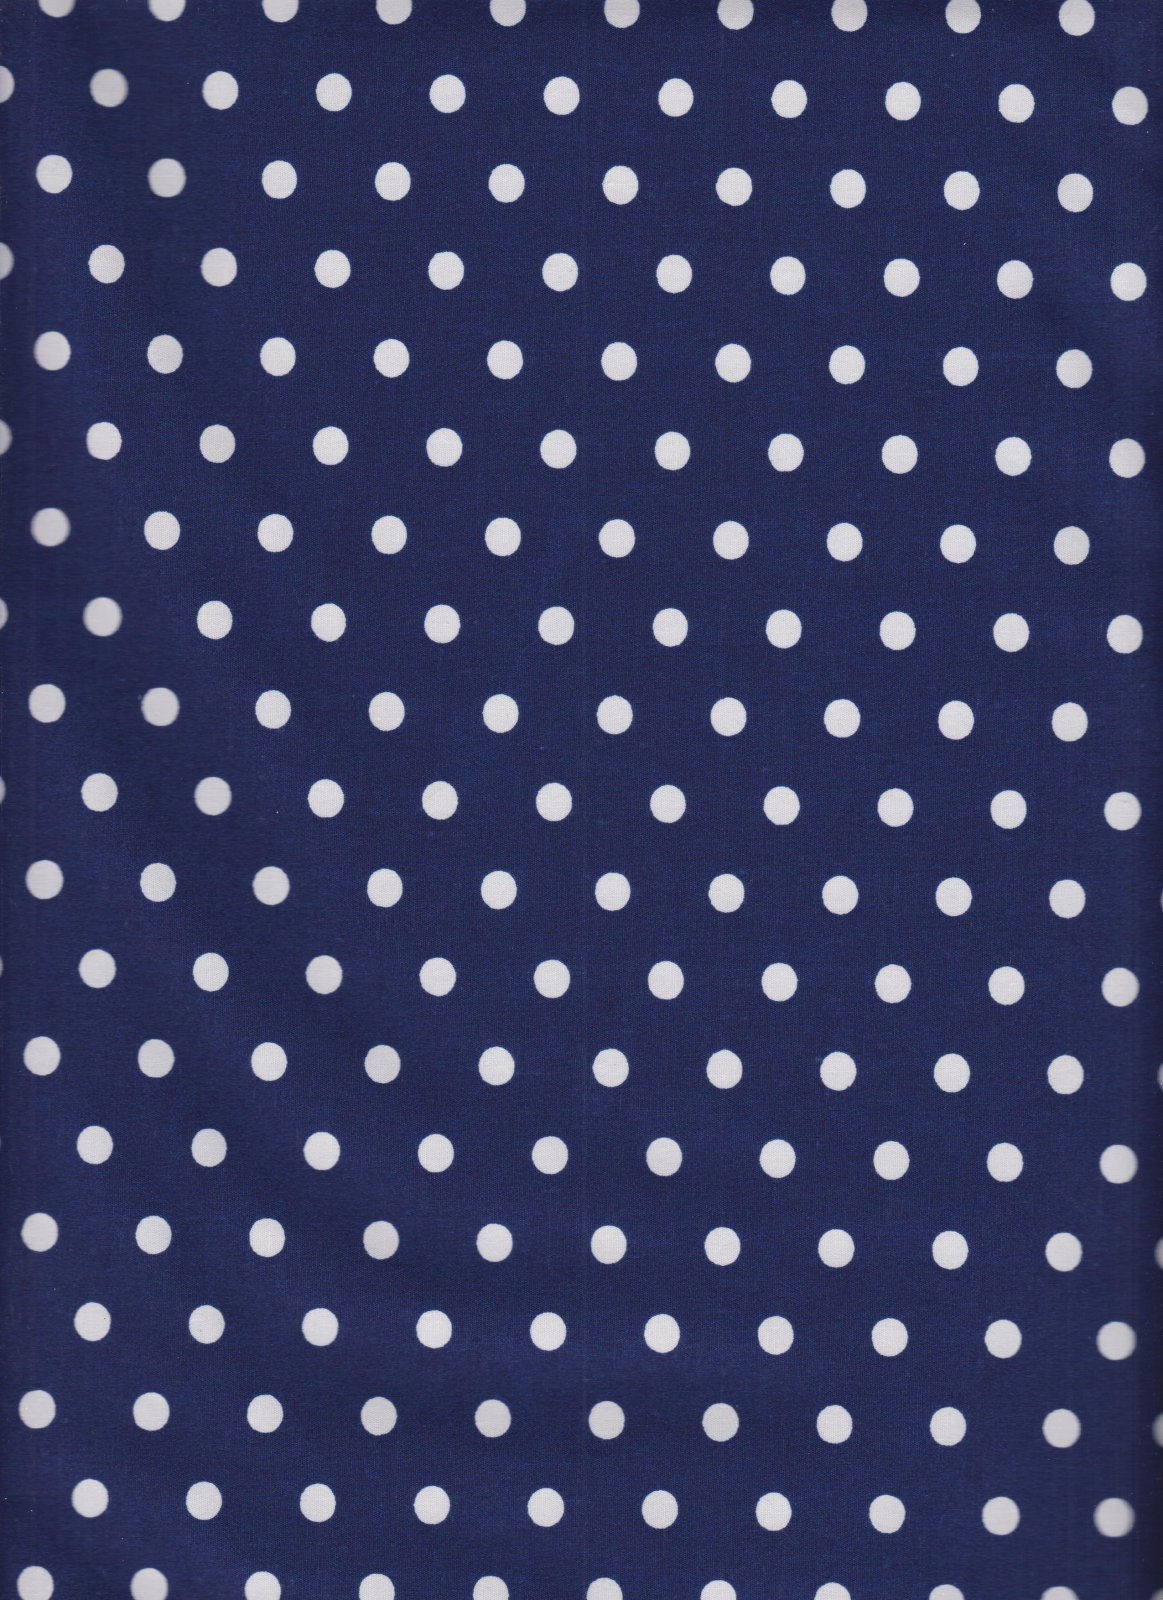 White Dots on Navy Background